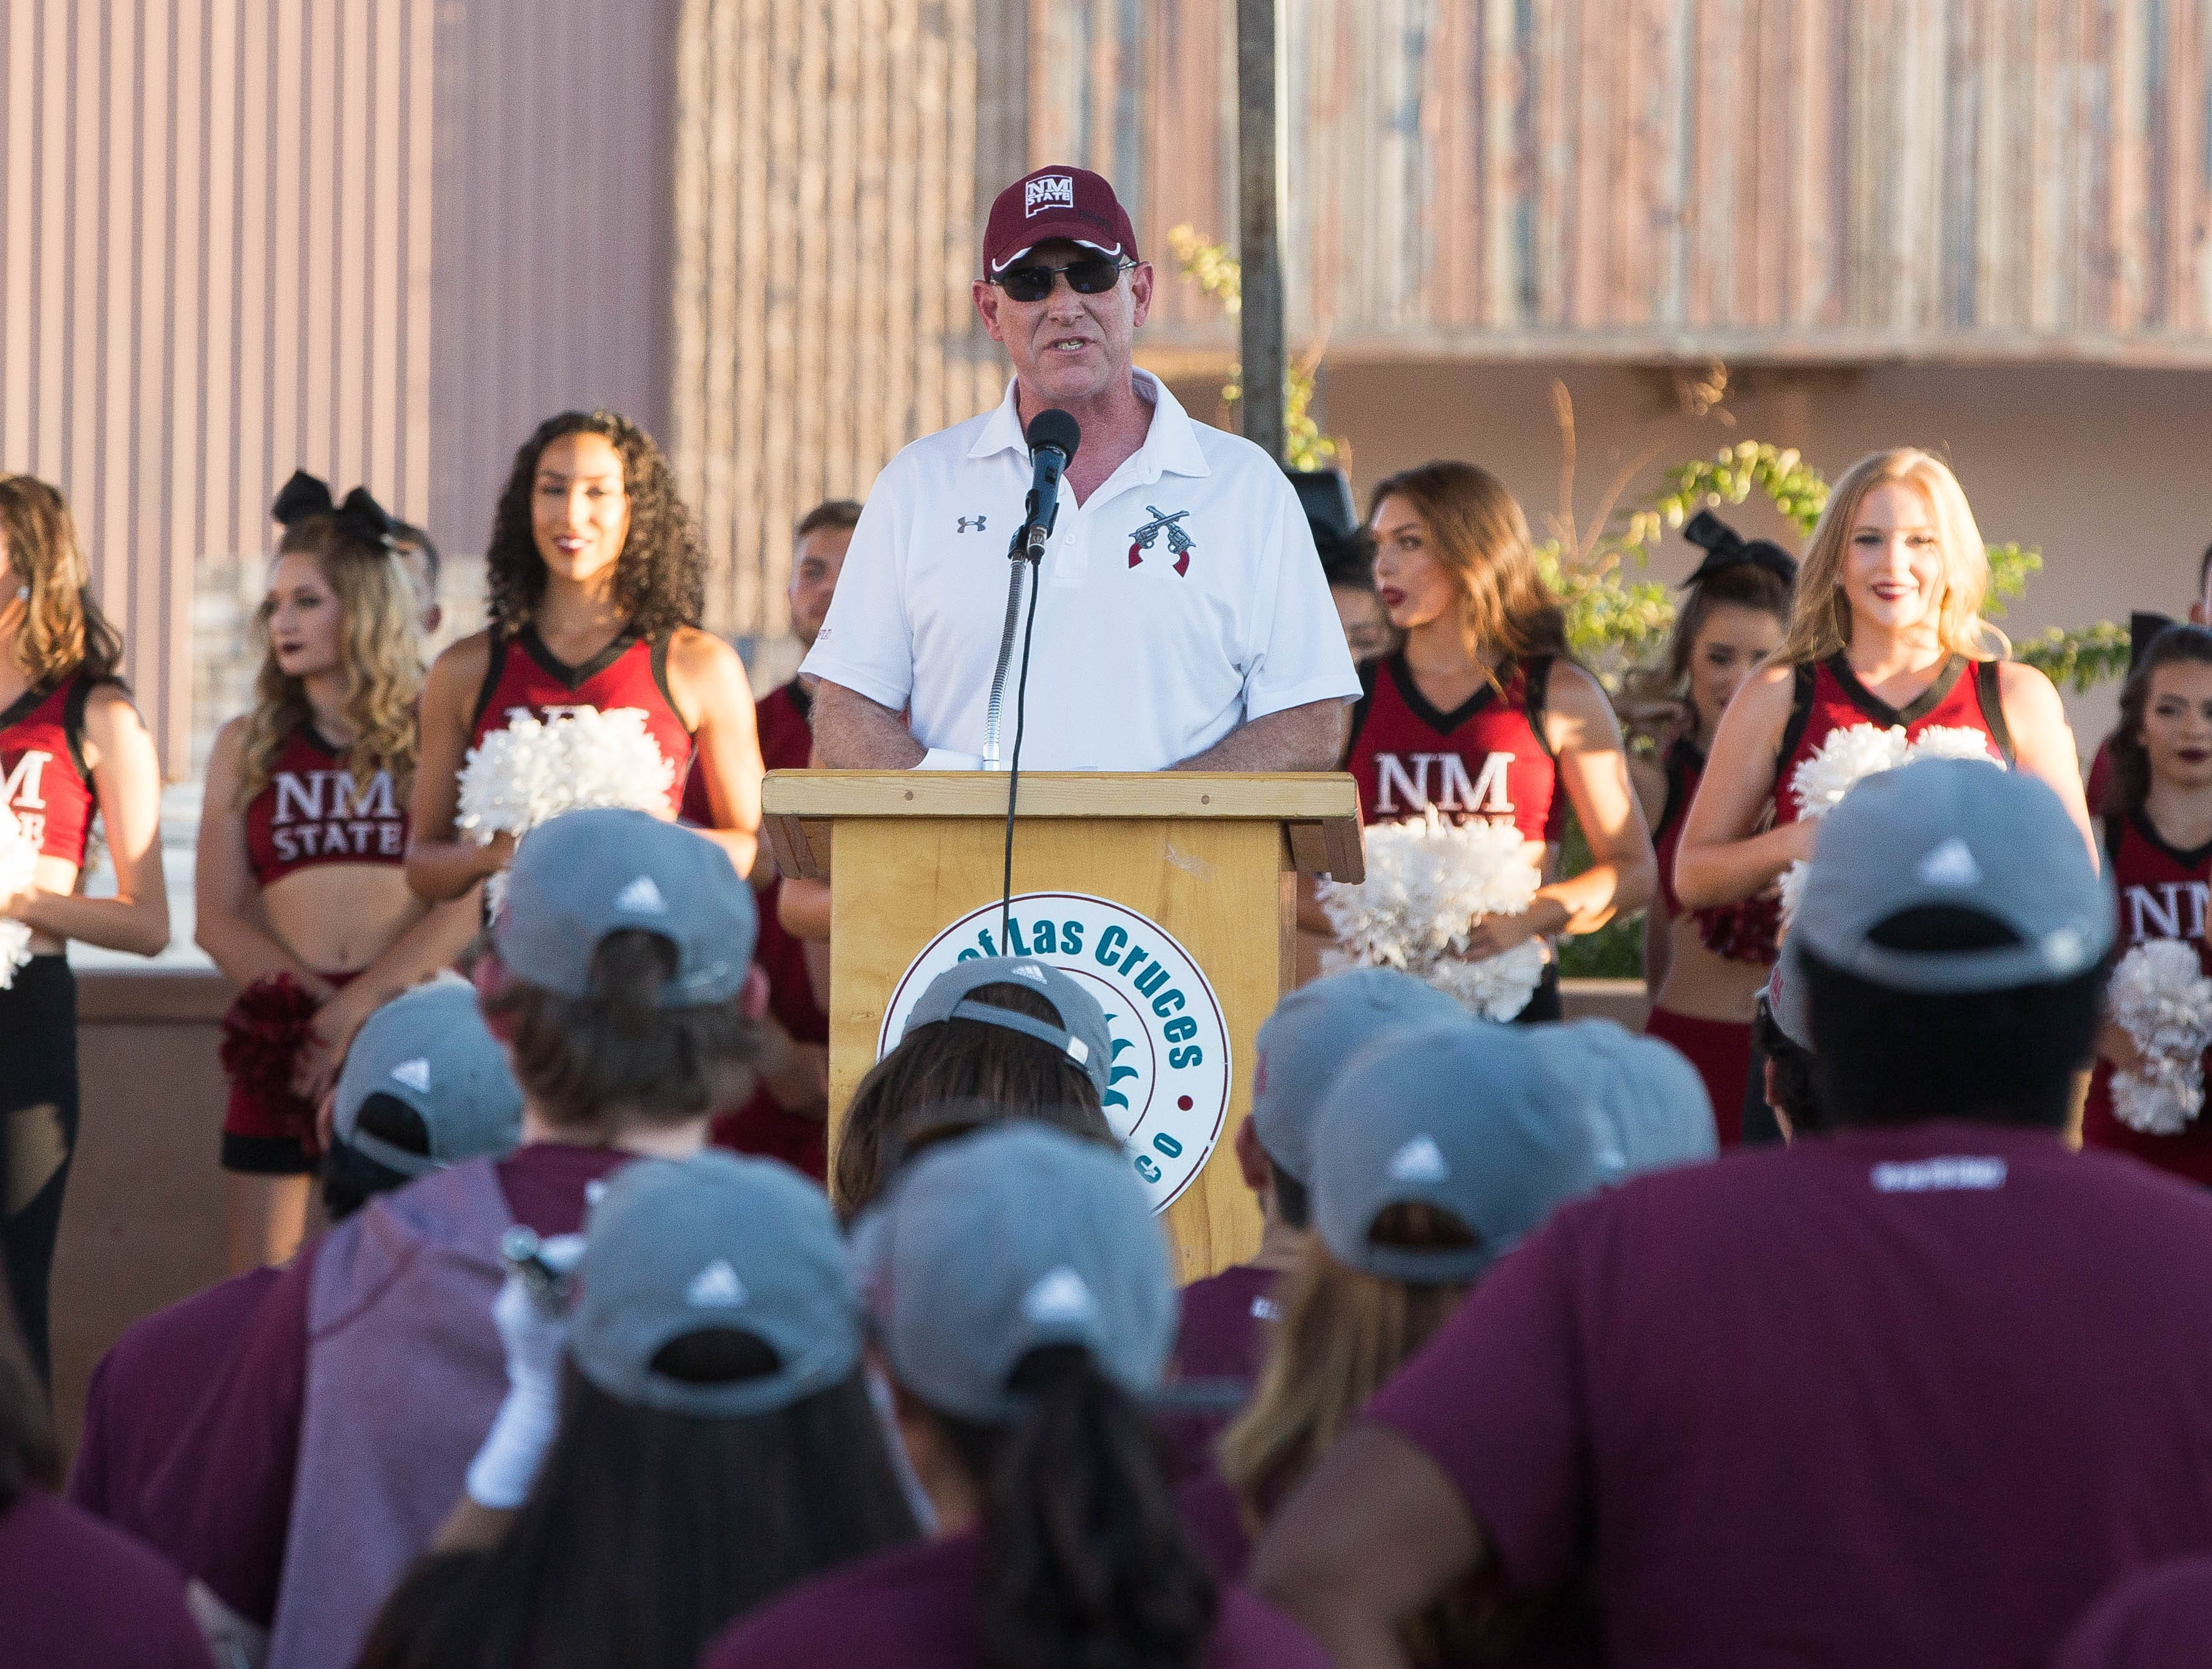 Stuart Ed, the Las Cruces City Manager, speaks to the Aggie fans and NMSU Athletes and Marching Band that gathered at the Plaza de Las Cruces for the Downtown Aggie Rally, Friday September 28, 2018.